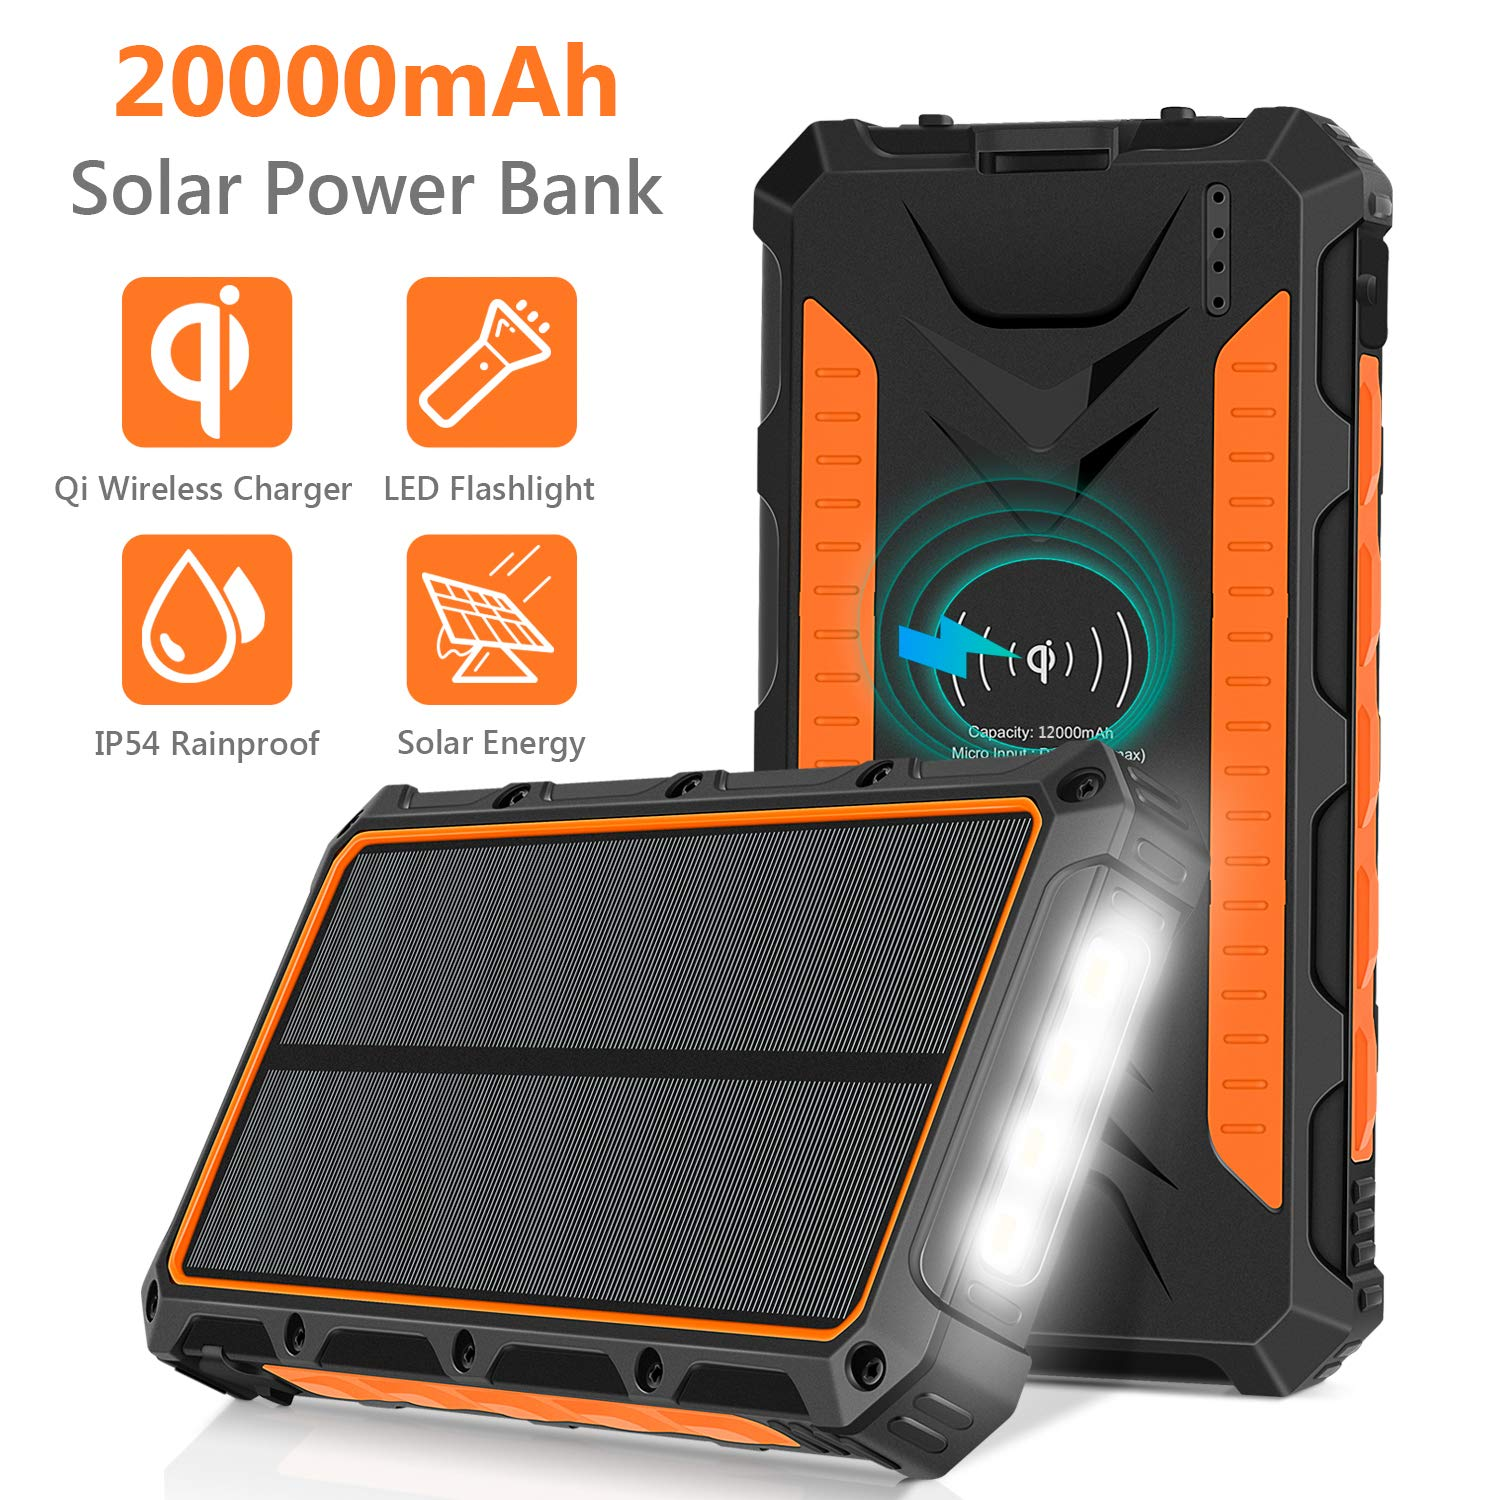 Solar Charger 20000mAh, Qi Wireless Portable Solar Power Bank External Backup Battery, 3 Output Ports, 4 LED Flashlight, Carabiner, IP54 Rainproof for Camping, Outdoor Activities by NEXGADGET